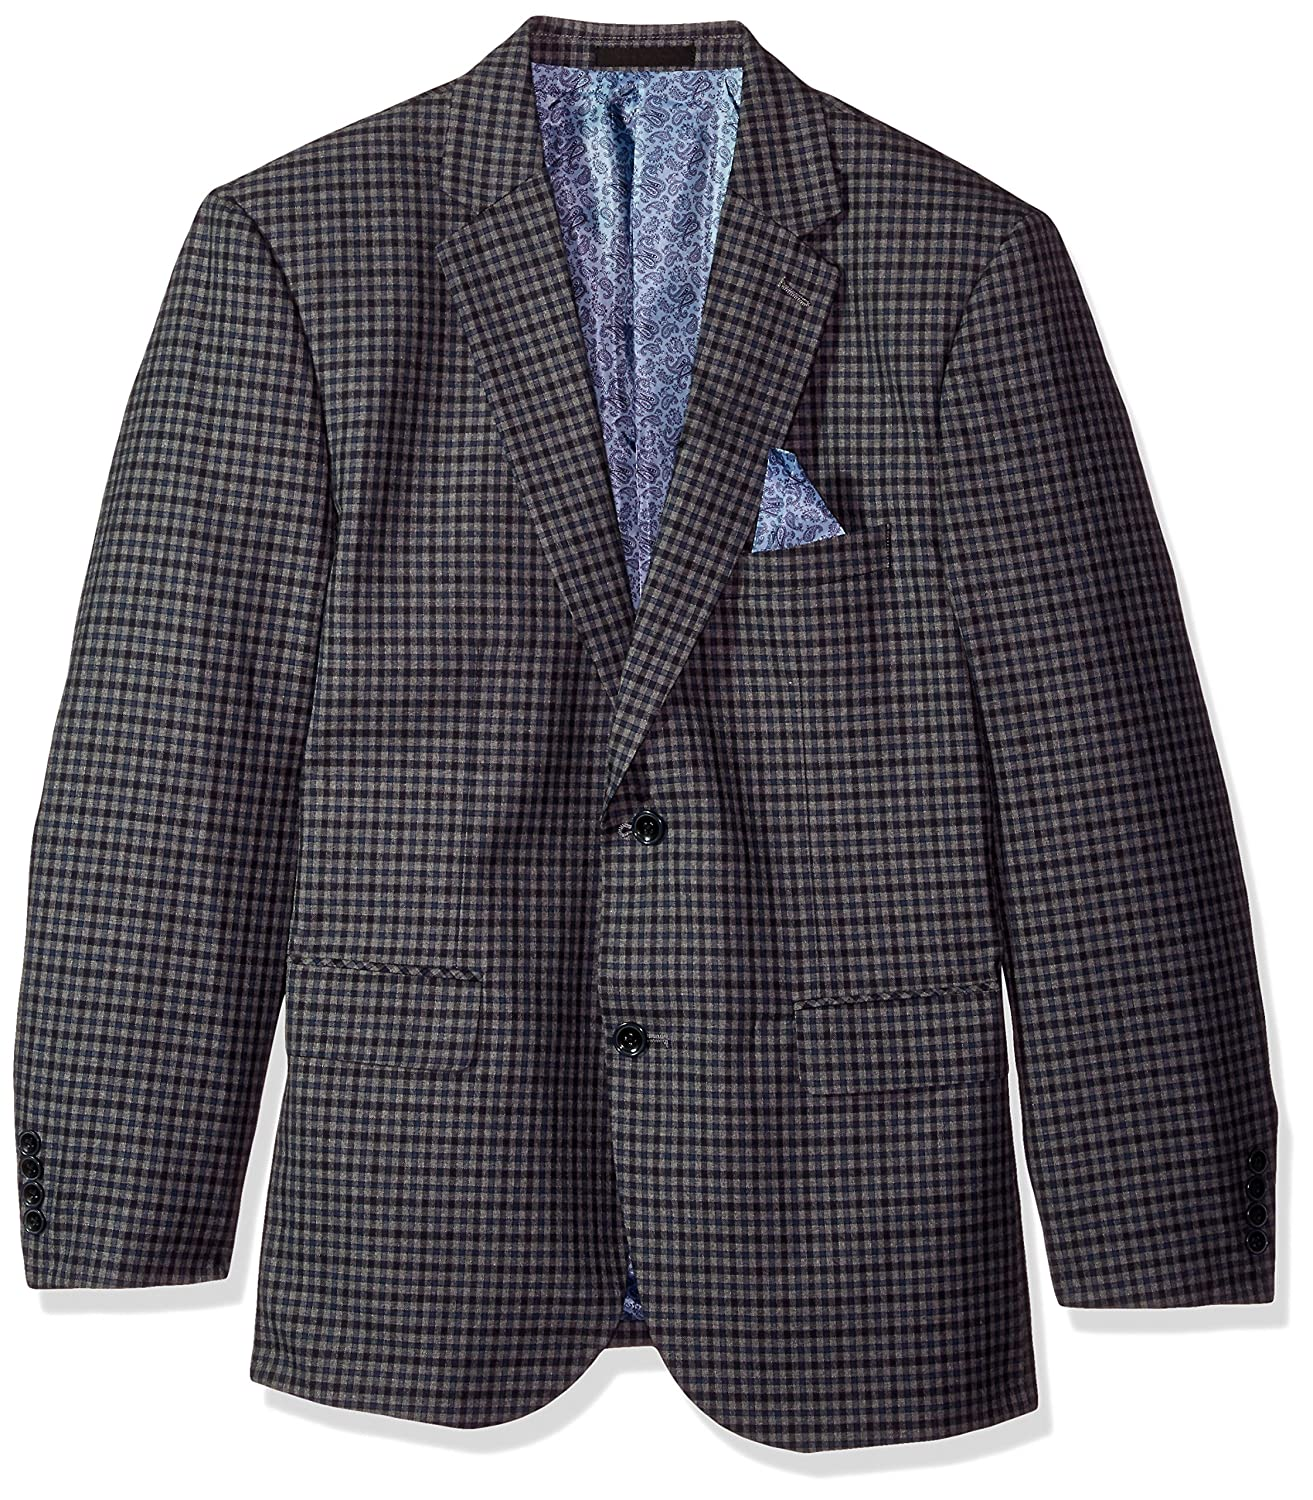 Alexander Julian Colours Men's Big & Tall Single Breasted Modern Fit Check Suit Jacket Alexander Julian Child Code 891-010J